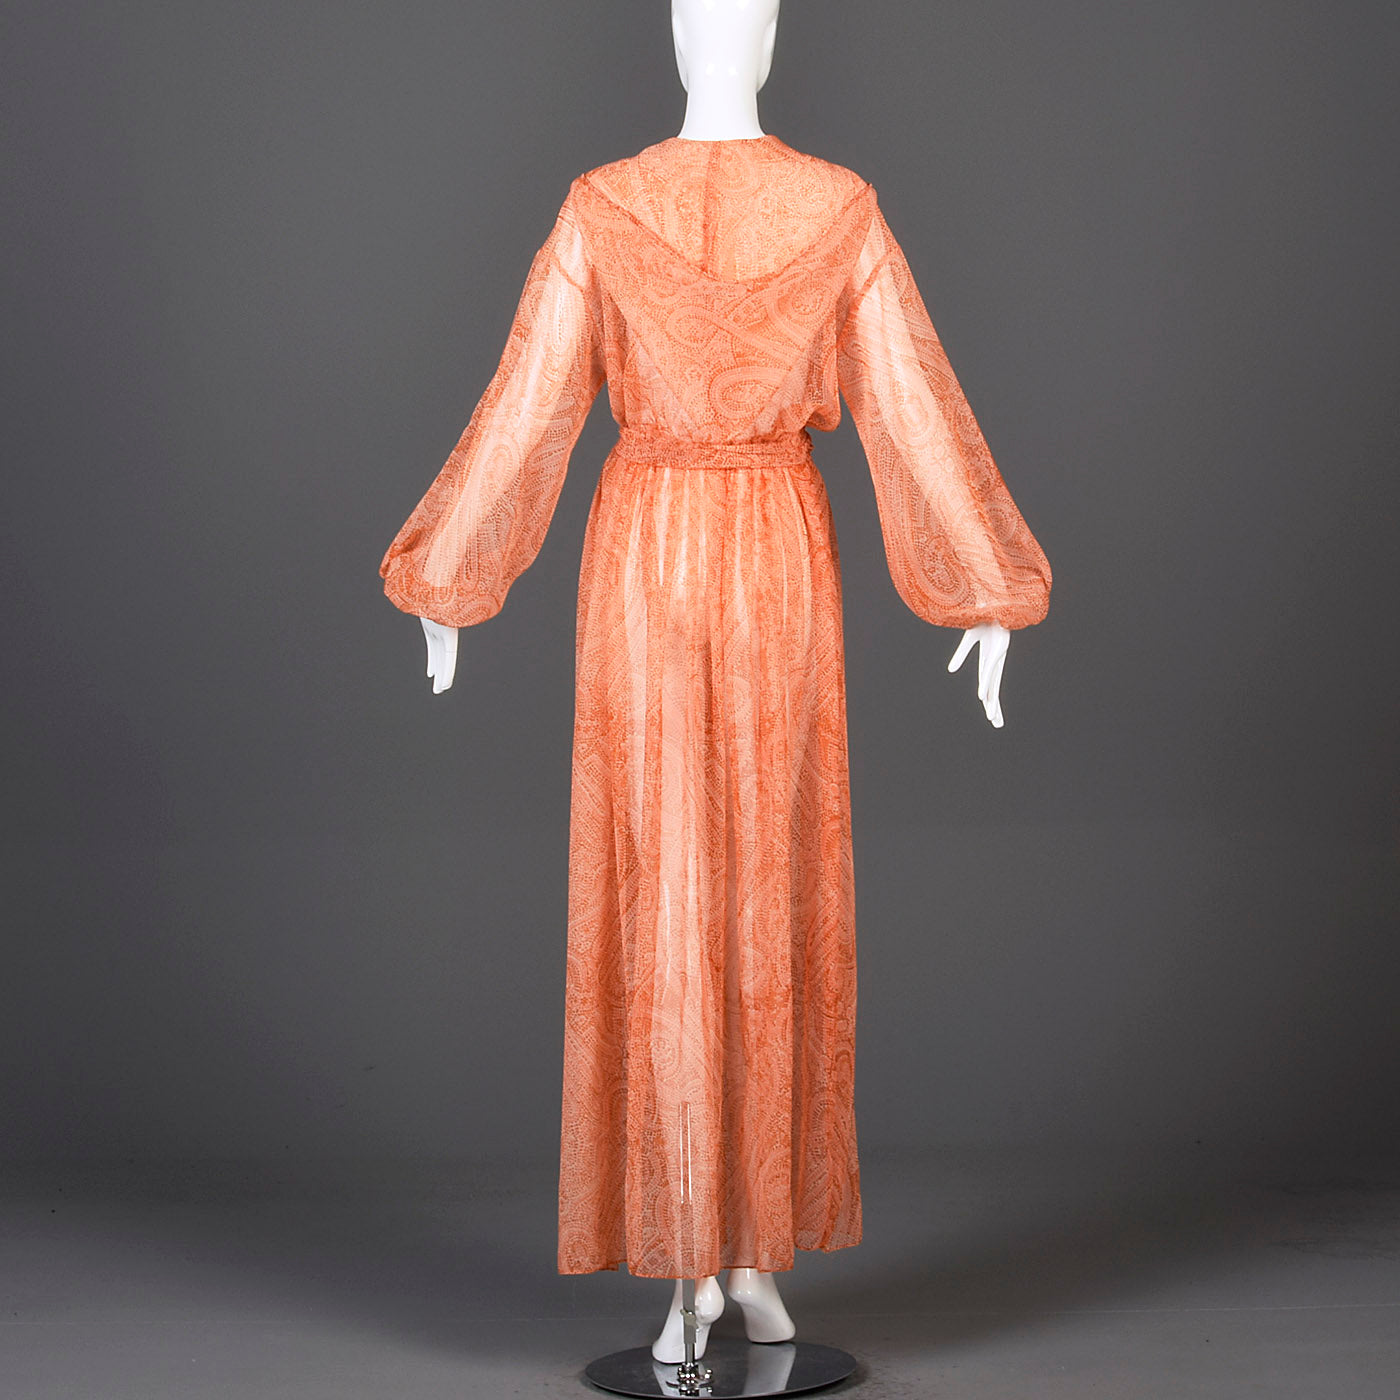 1970s Flowy Sheer Maxi Dress with Hood